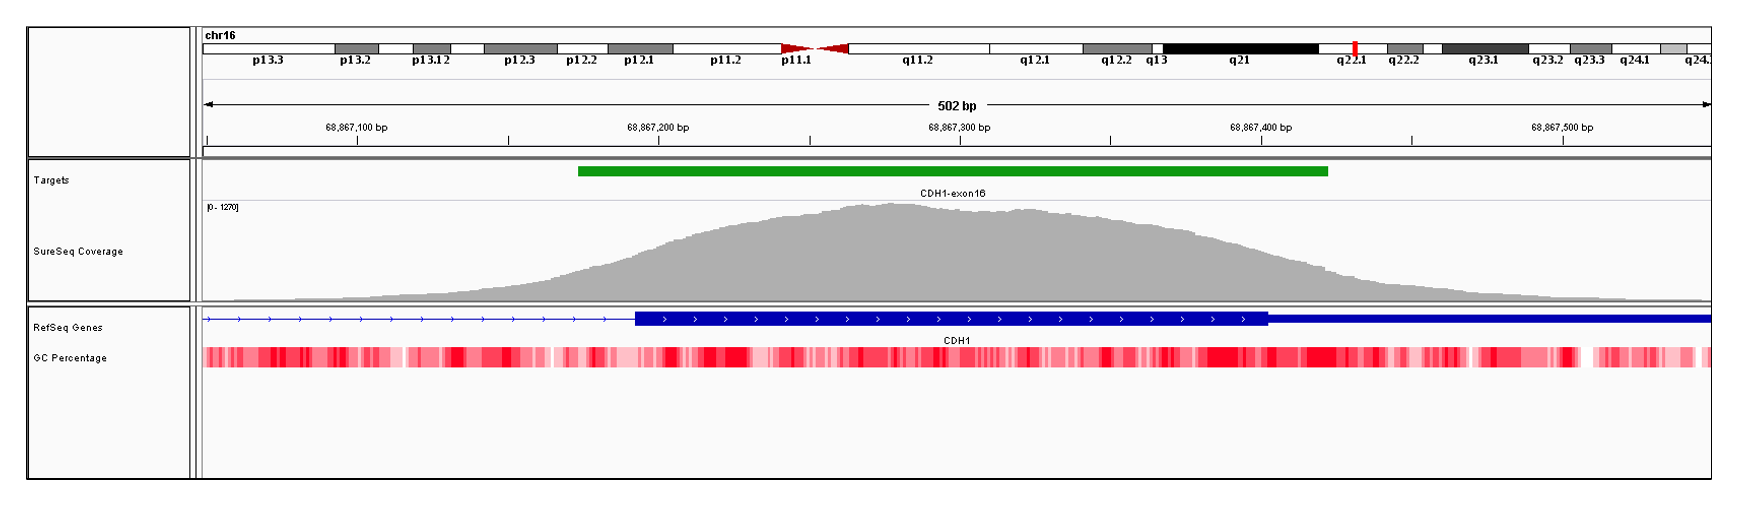 CDH1 Exon 16 (hg19 chr16:68867193-68869444). Depth of coverage per base (grey). Targeted region (green). Gene coding region as defined by RefSeq (blue). GC percentage (red). Image